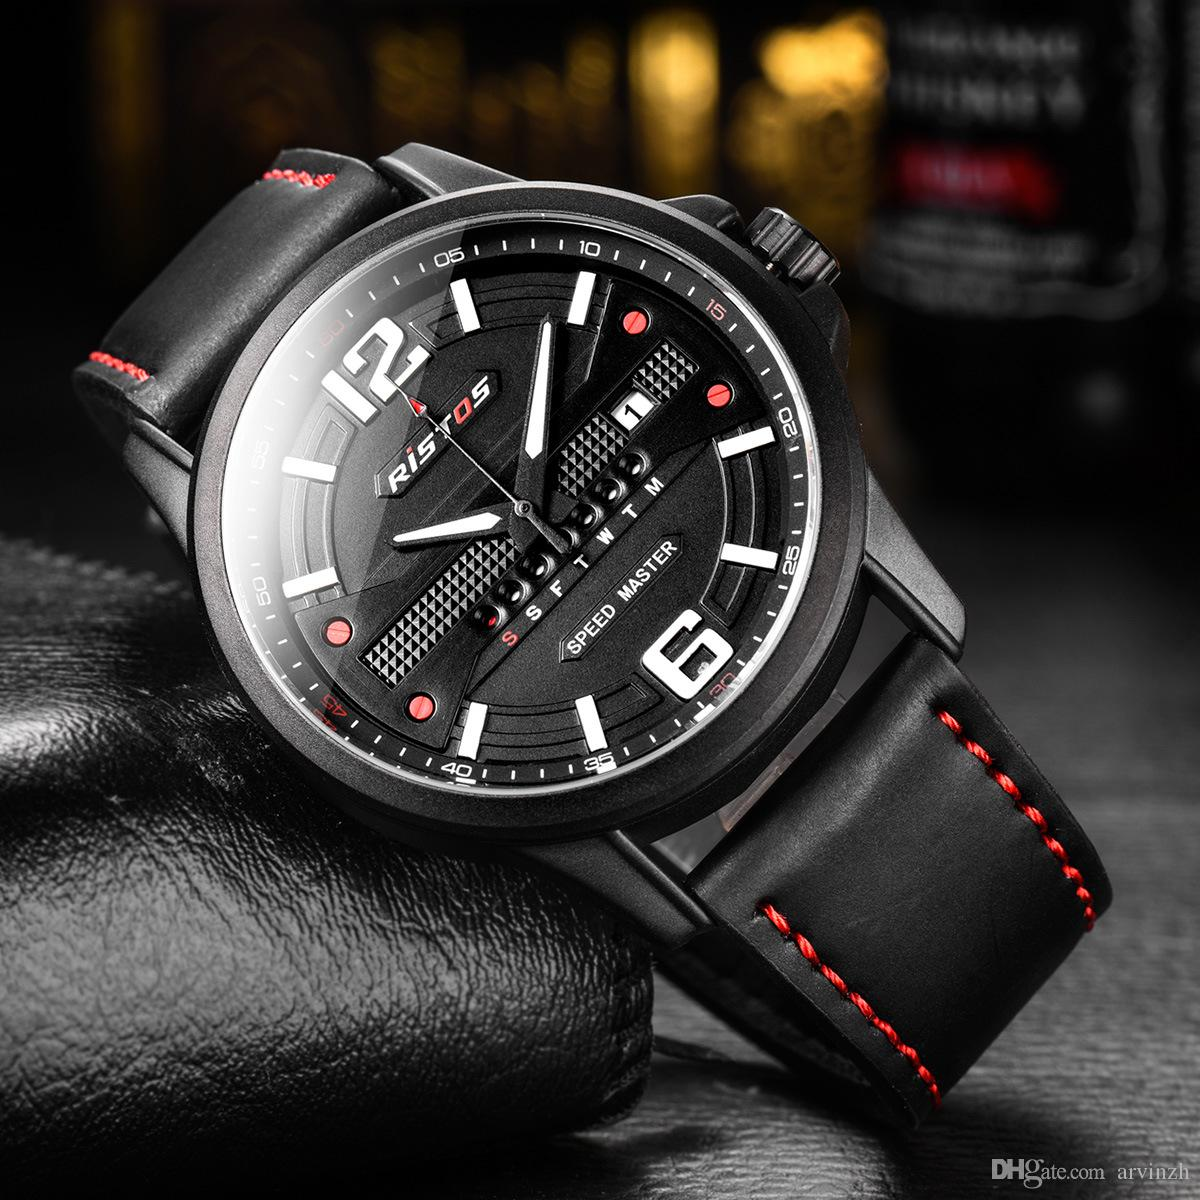 waterproof luminous match features casual men your high automatic watch with tevise watches brand up luxury very material to easy or quality business malaysia stainless attire wristwatch steel fashion mechanical sport wear